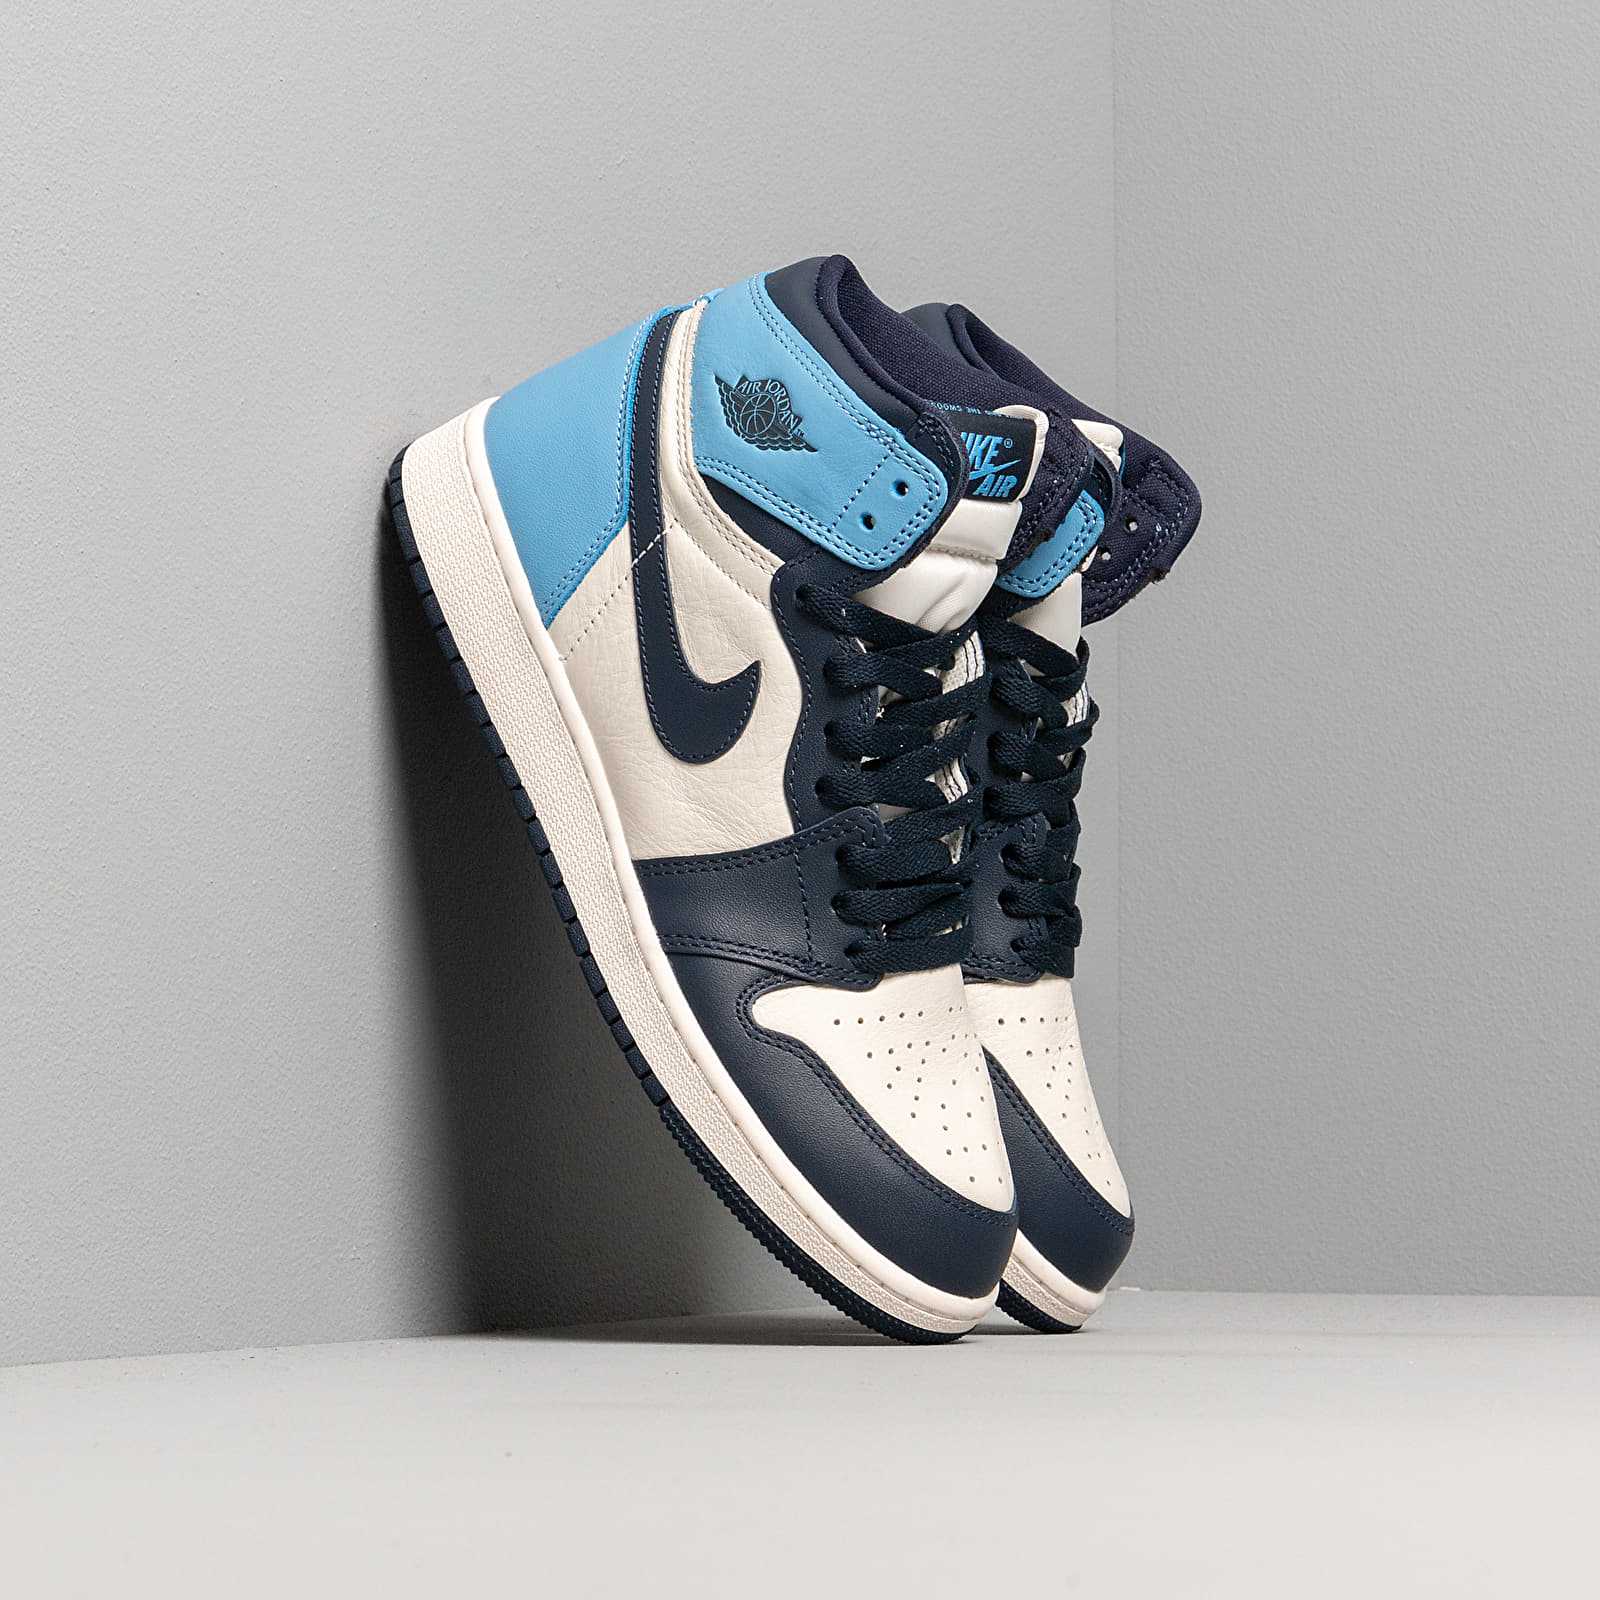 Air Jordan 1 Retro High OG Gs Sail/ Obsidian-University Blue | Footshop